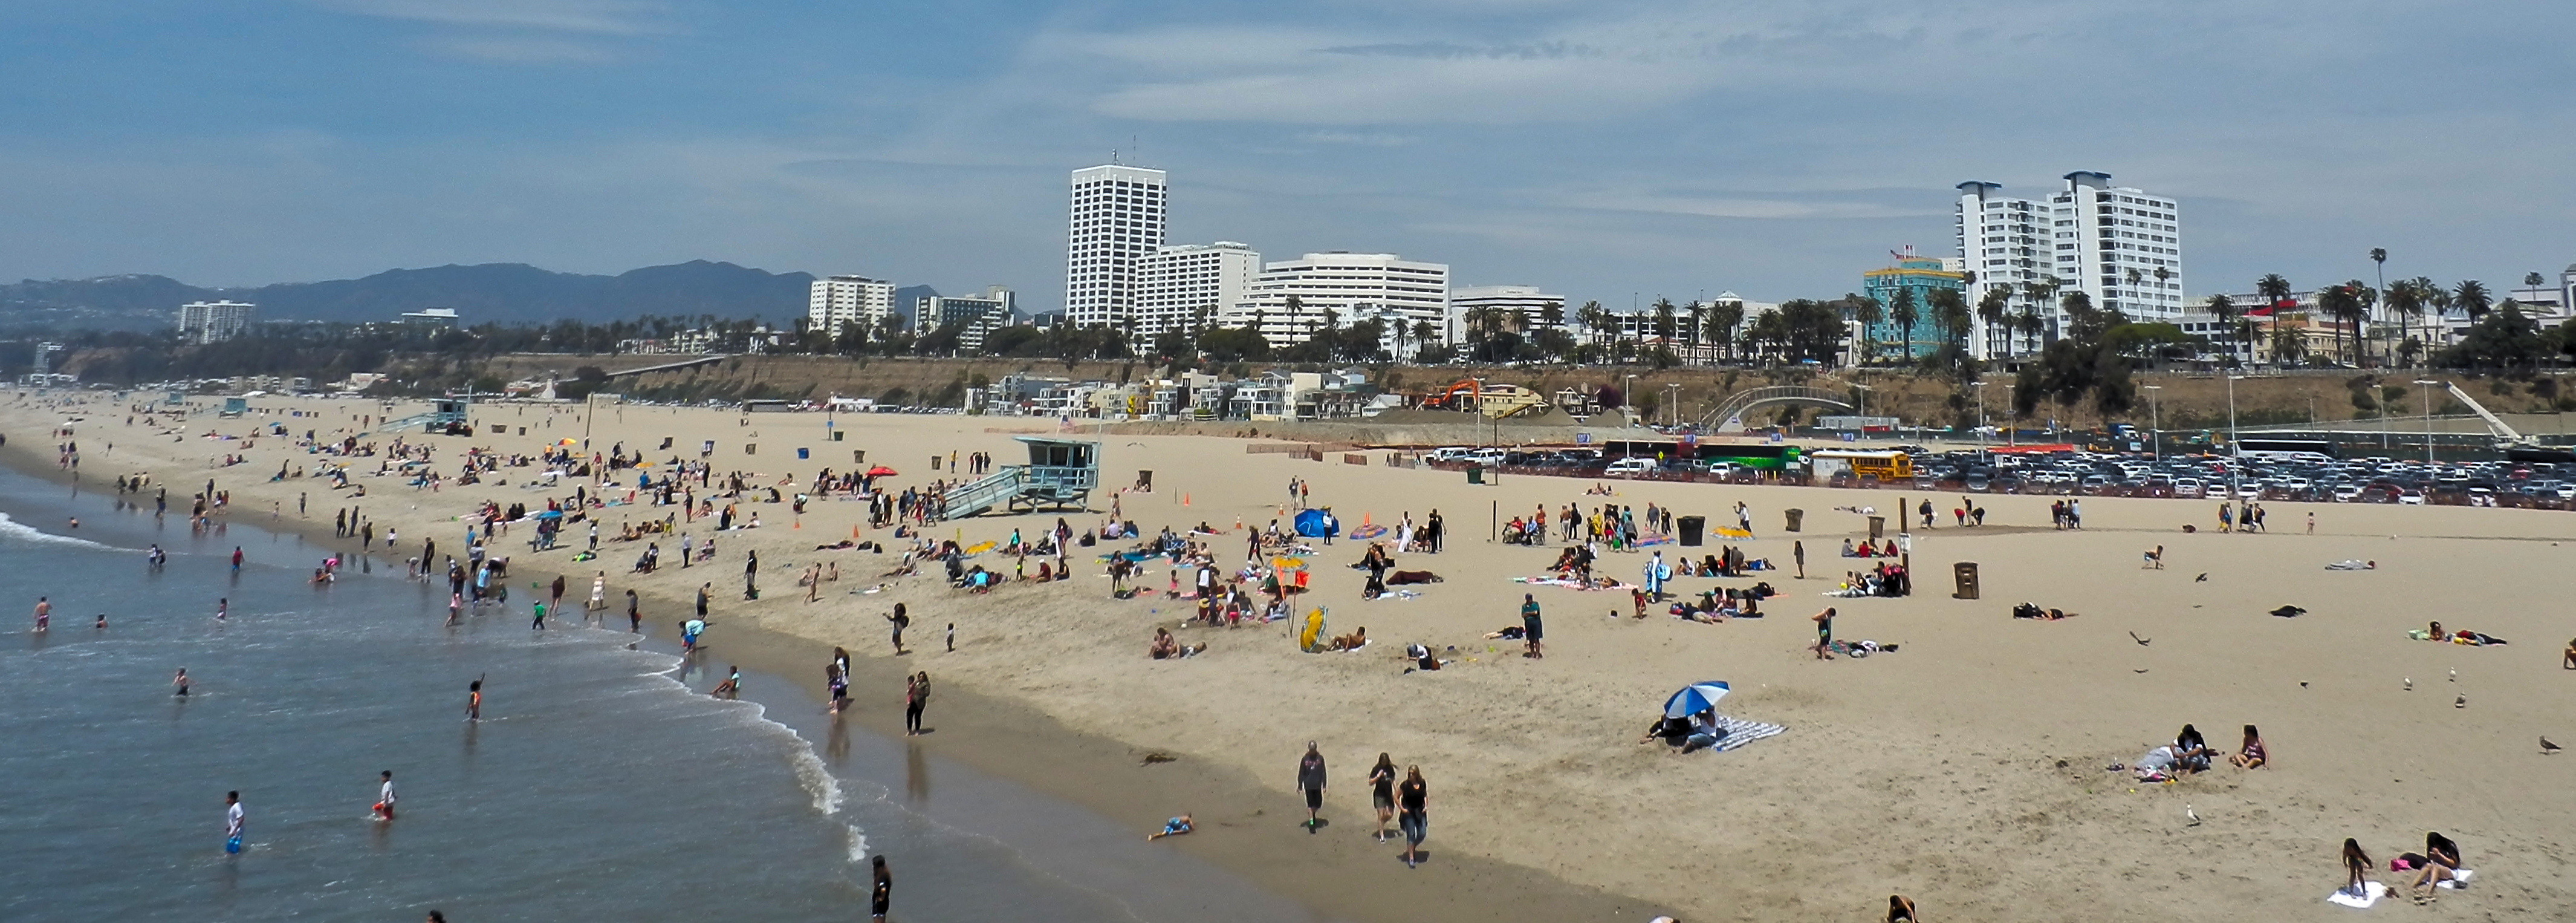 The busy Santa Monica State Beach